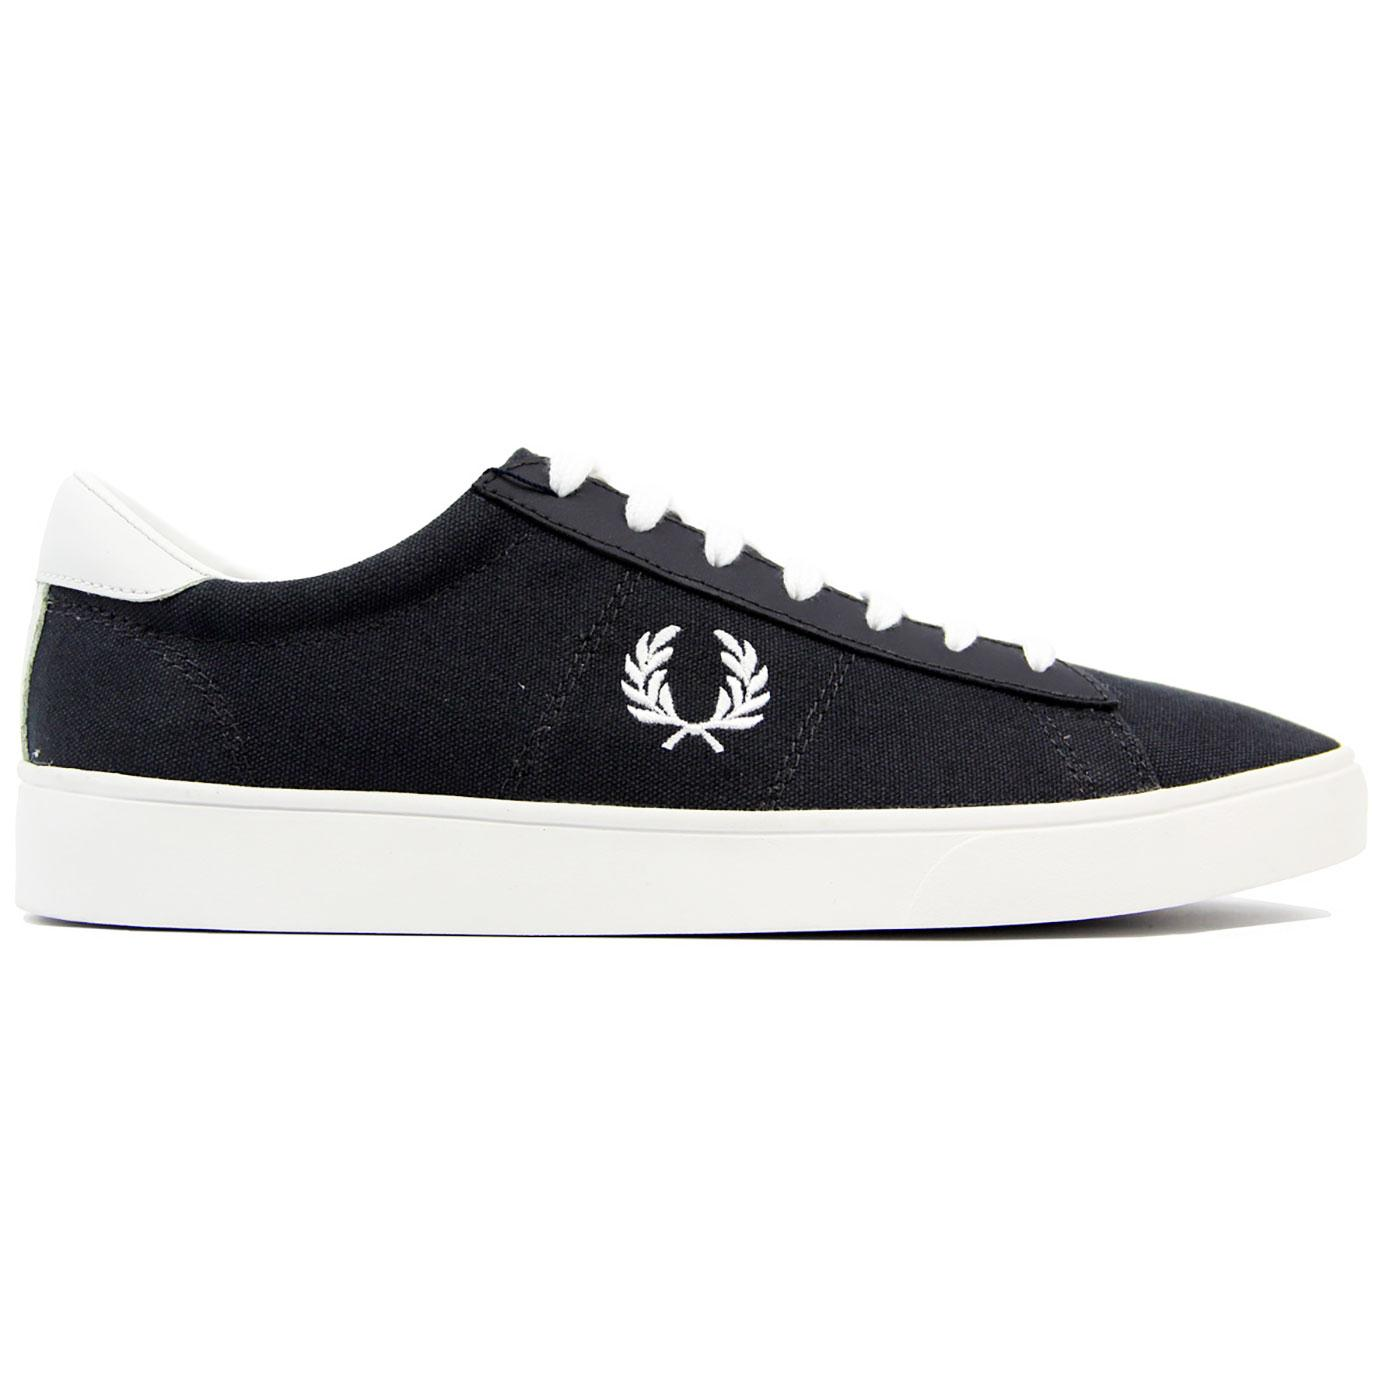 Spencer FRED PERRY Men's Retro Canvas Trainers C